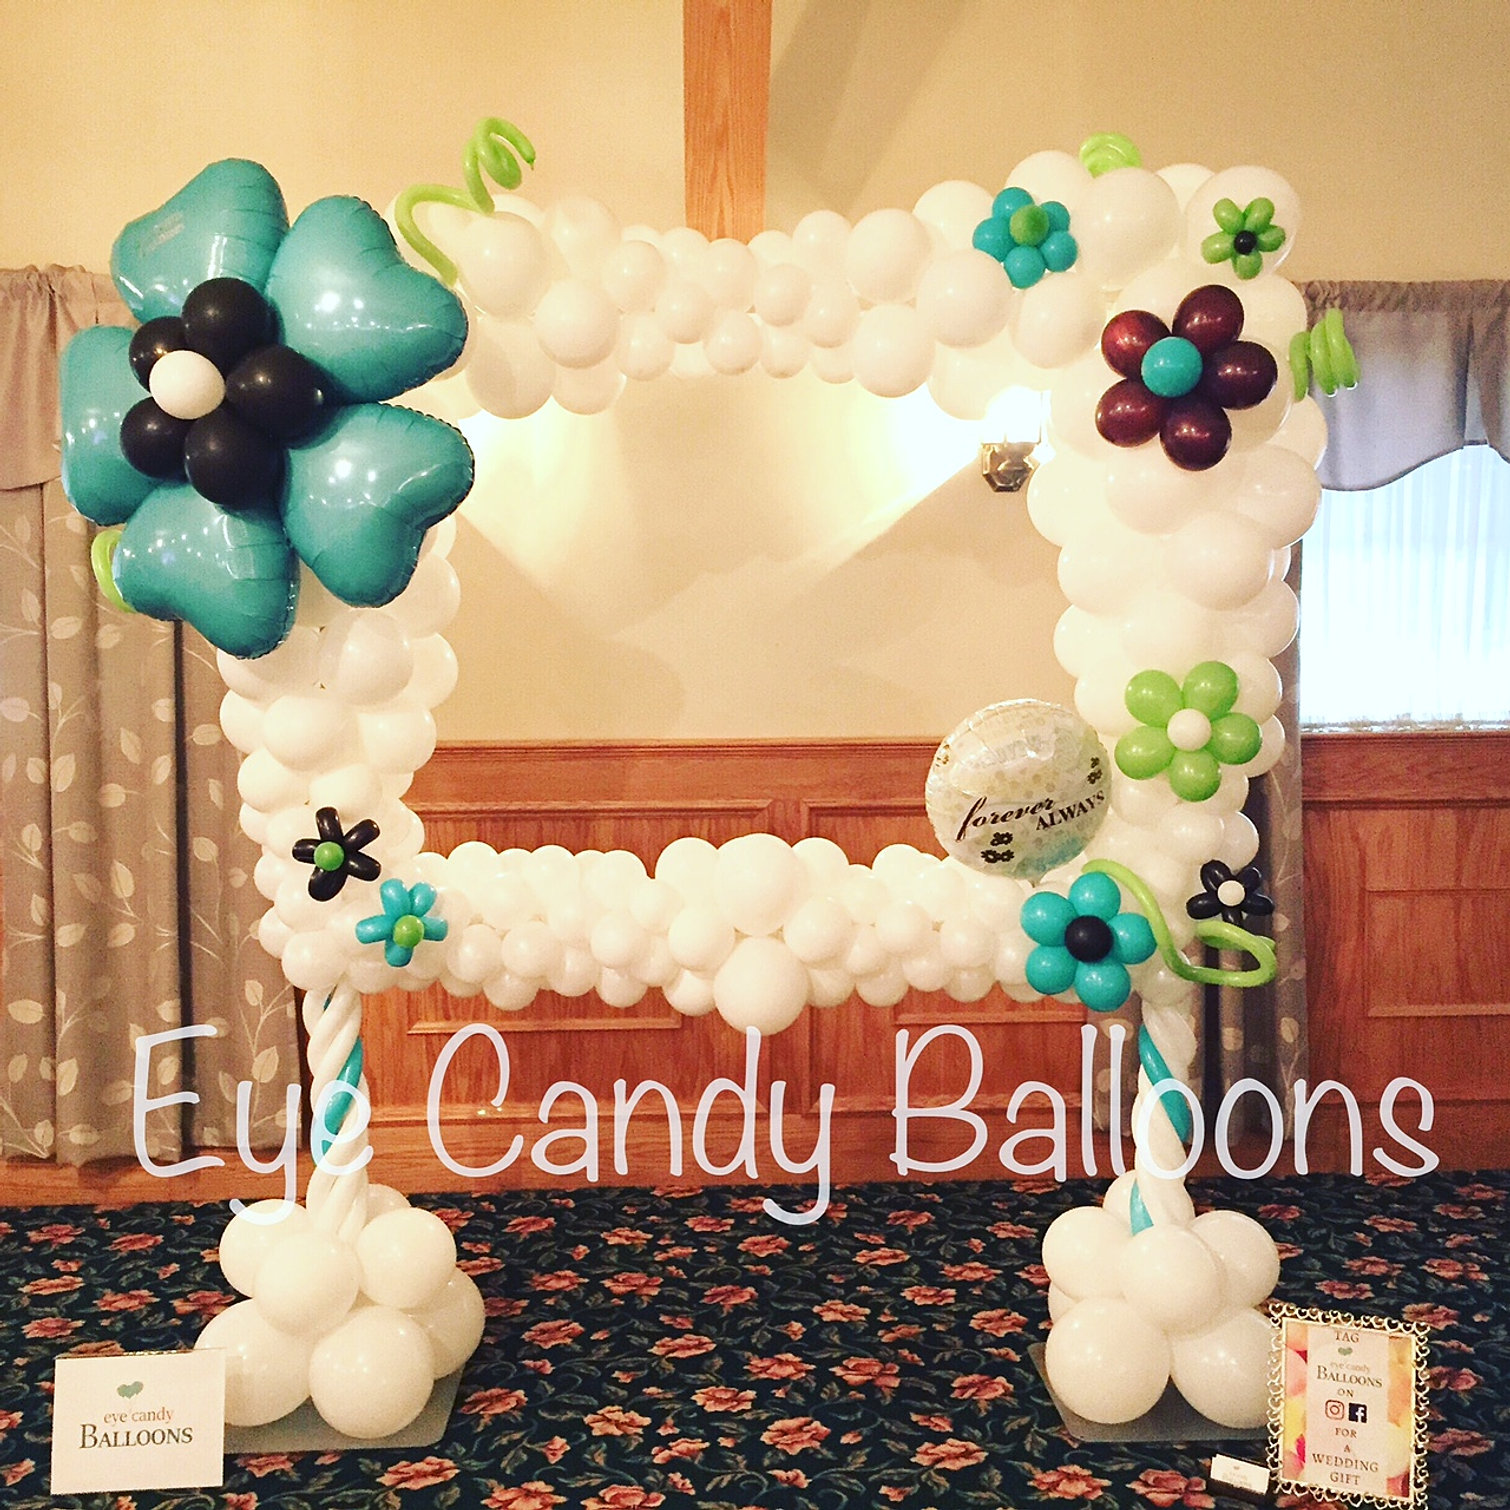 party decorations | party balloons | Eye Candy Balloons, Manchester